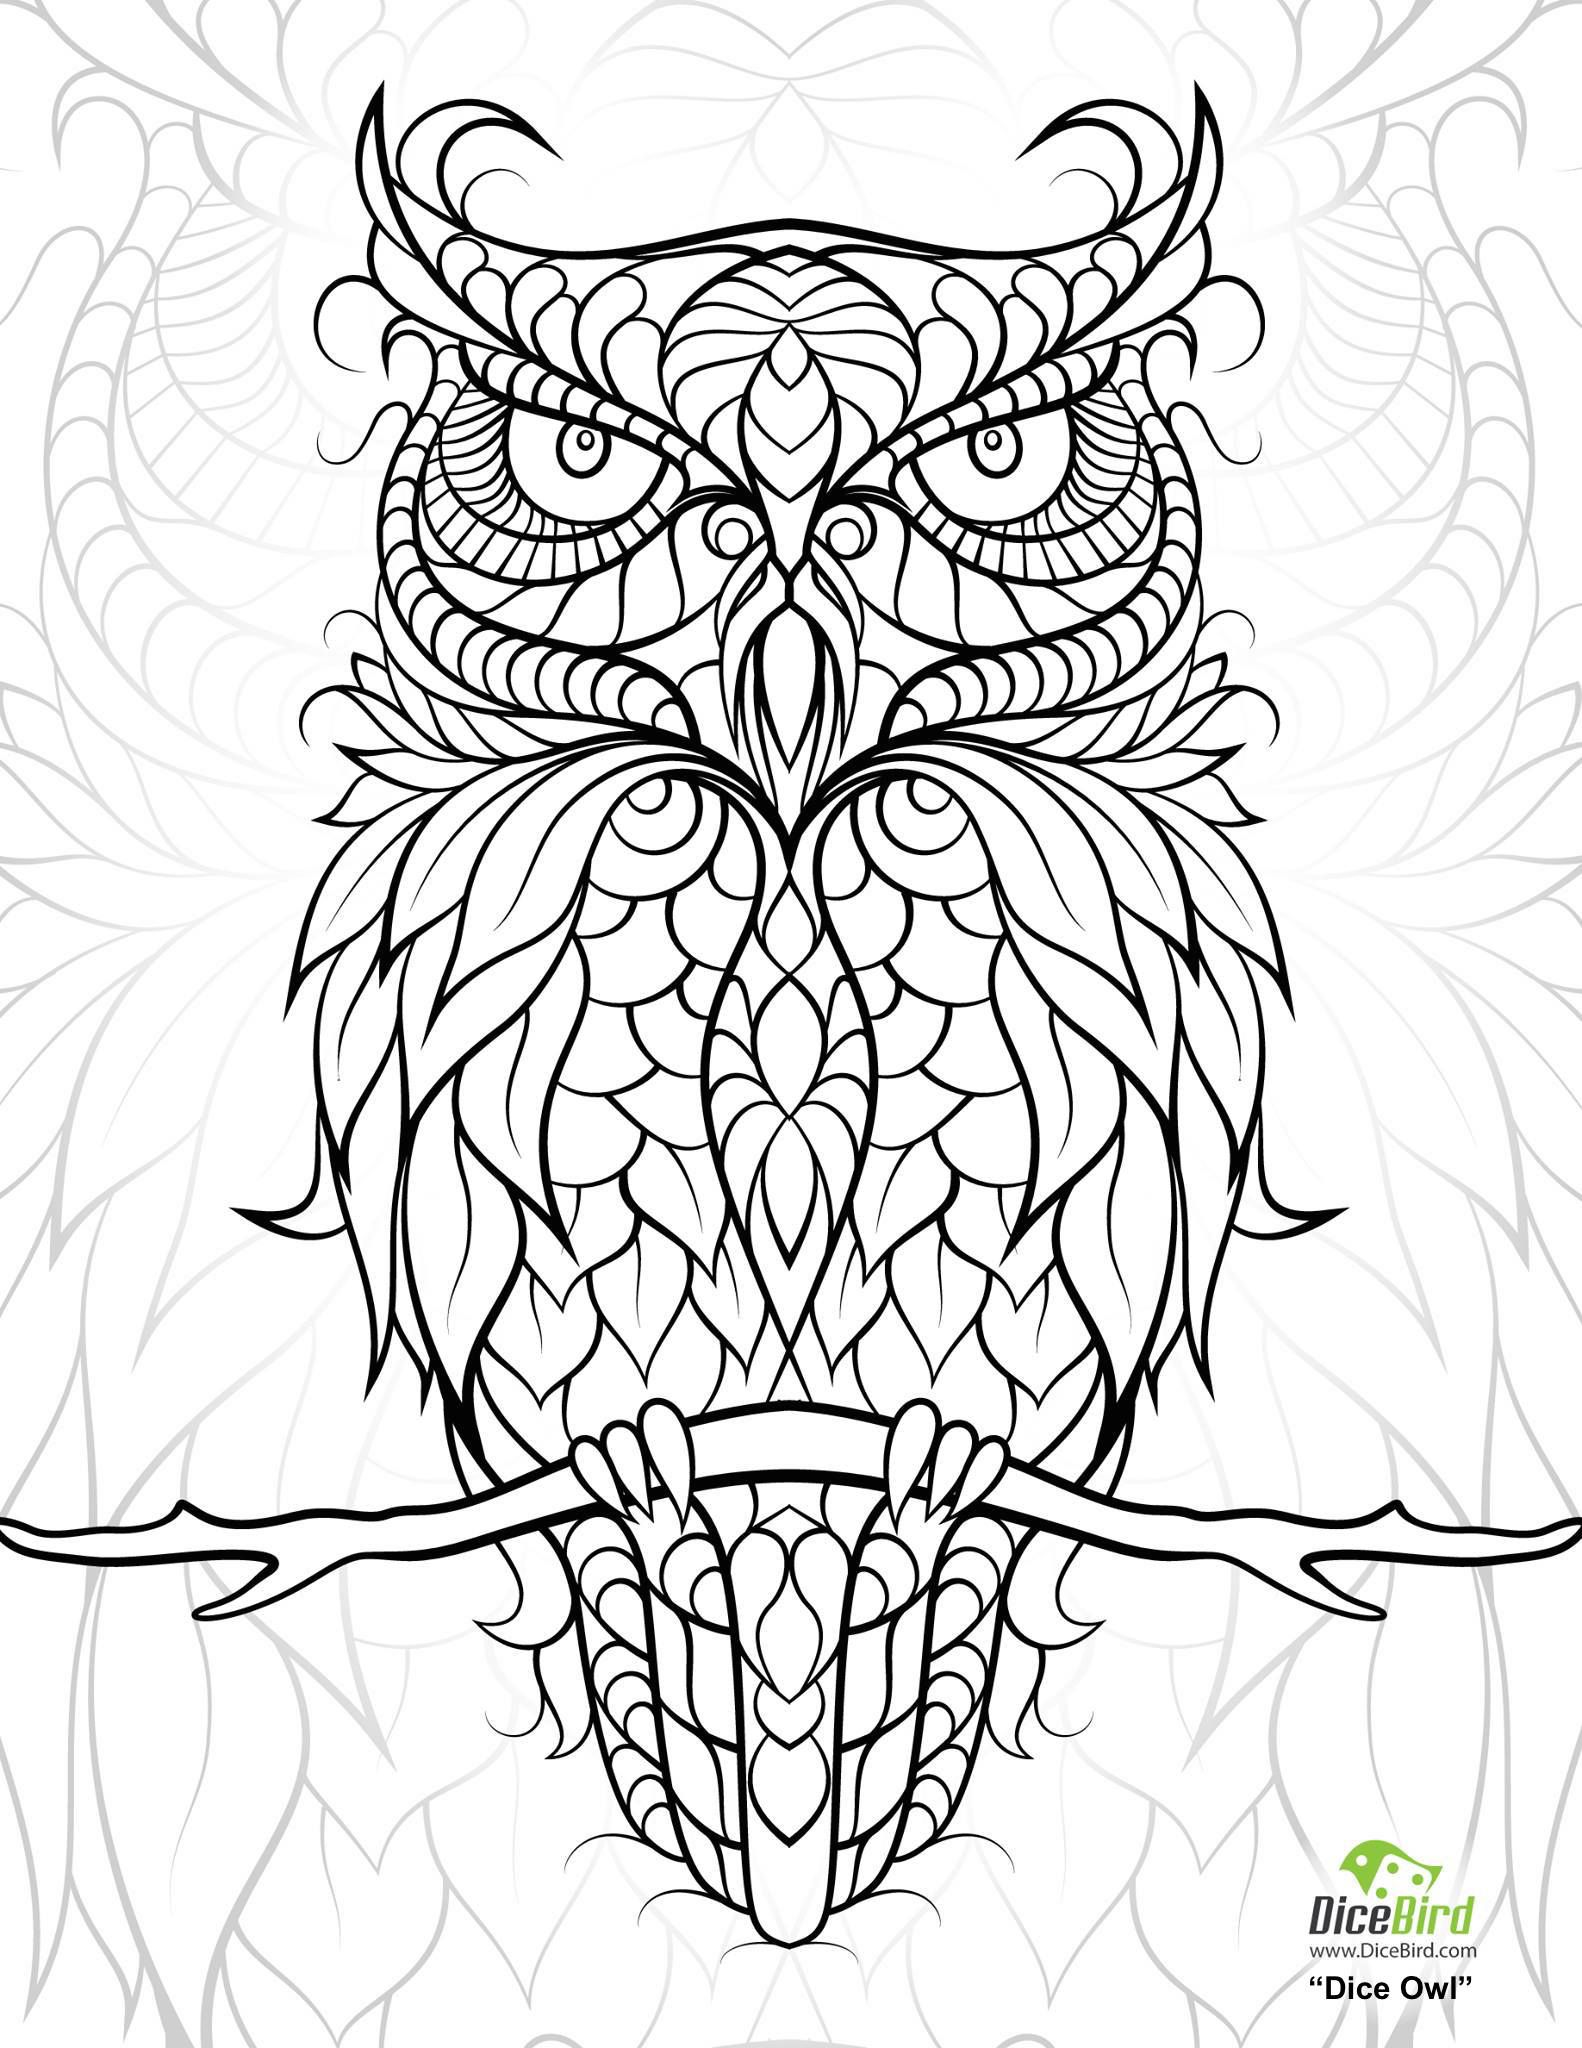 diceowl-free printable adult coloring pages | Adult Coloring Books ...